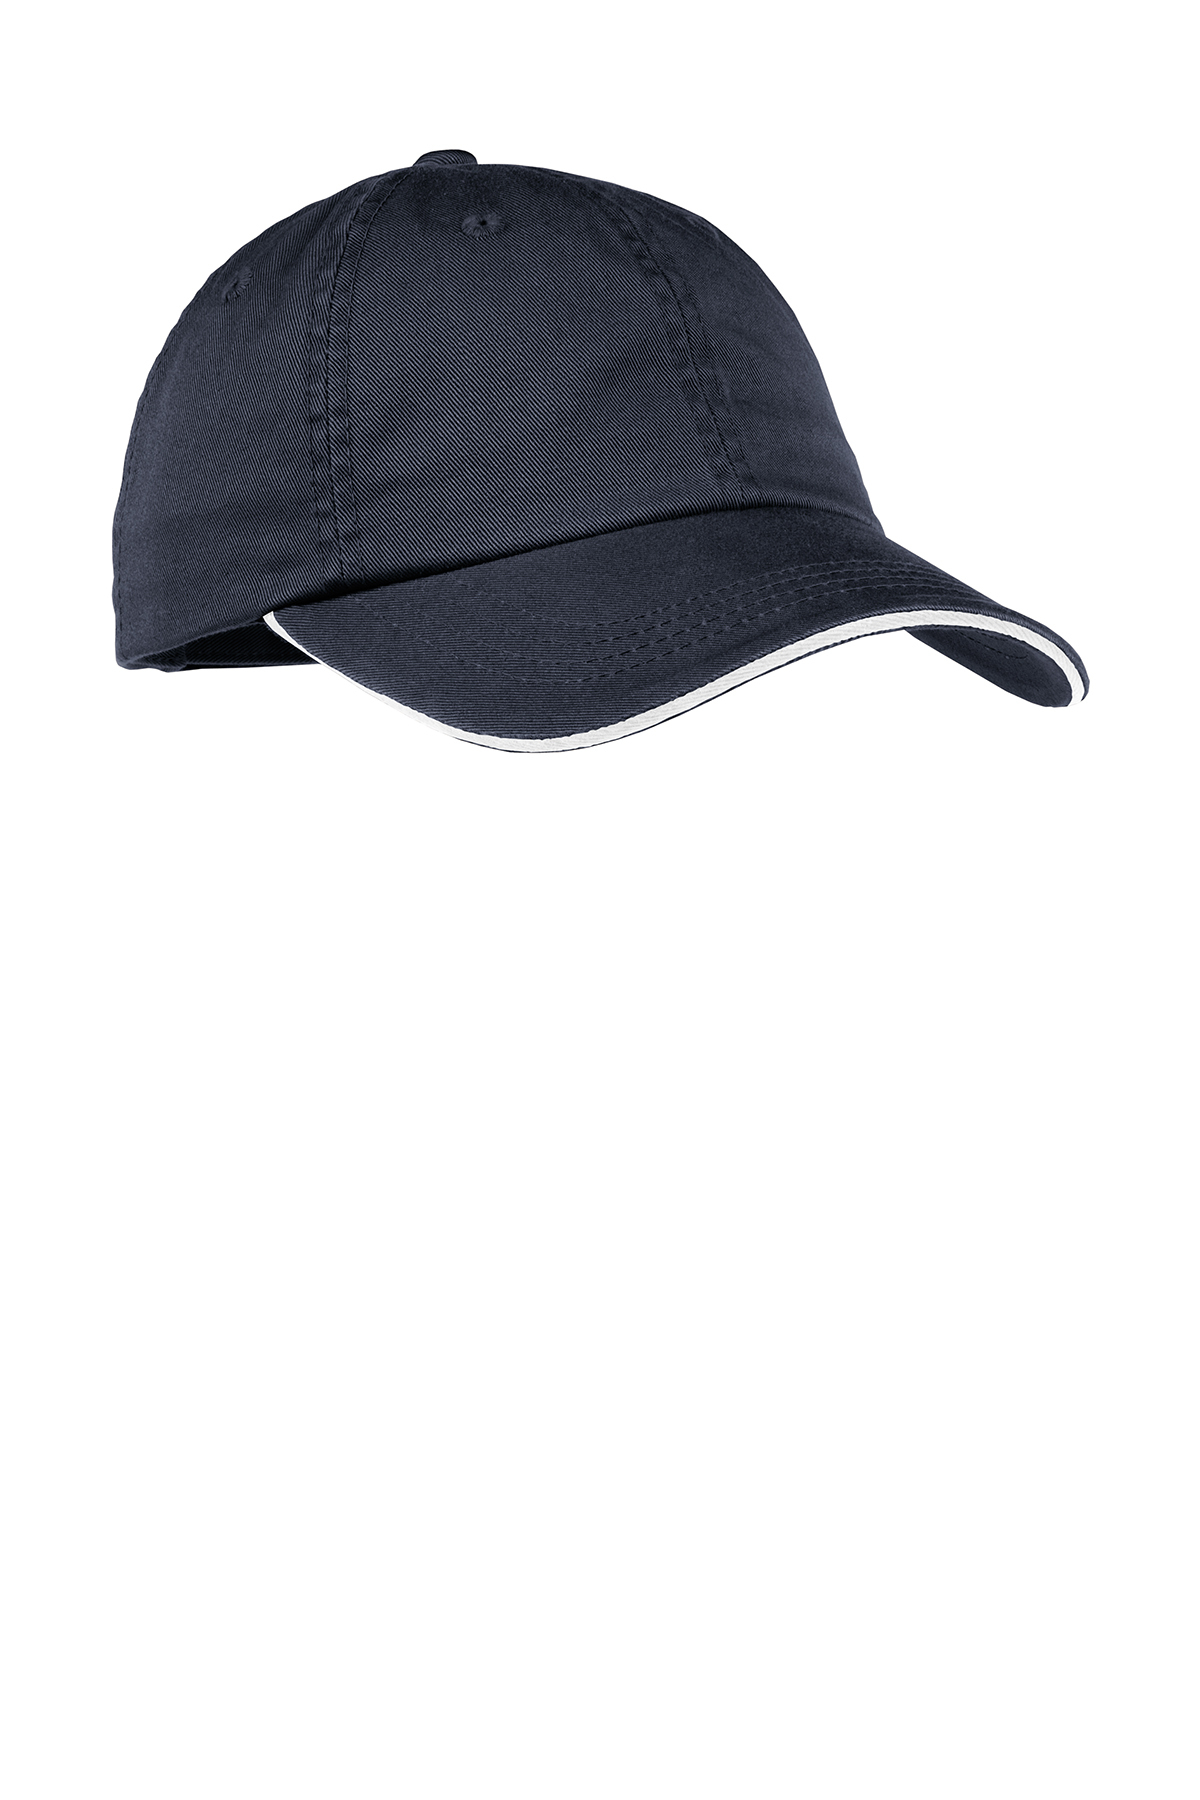 76fd9b06cdd3eb Port Authority® Ladies Sandwich Bill Cap with Striped Closure ...